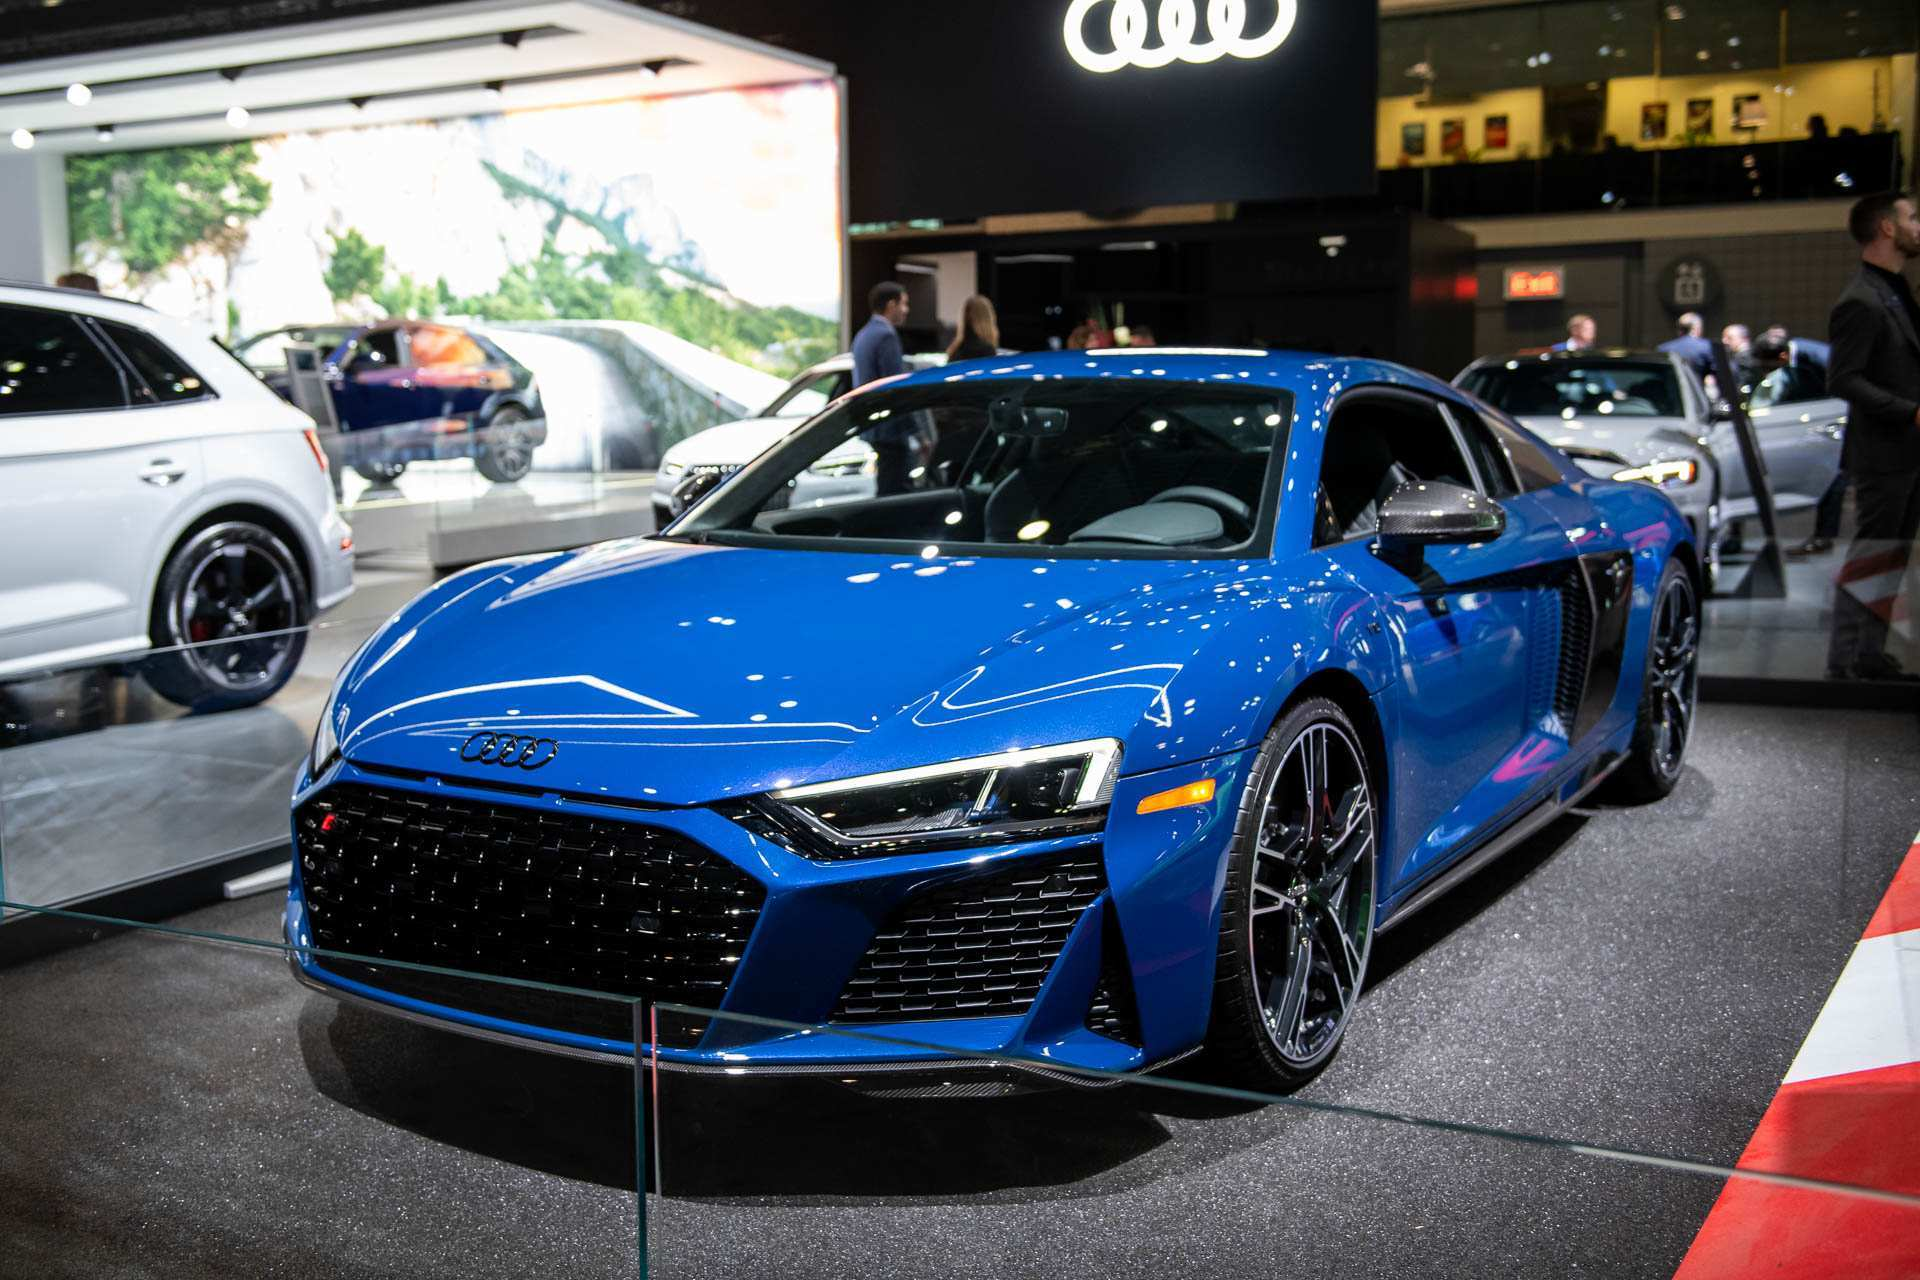 57 Gallery of Audi New Models 2020 Release with Audi New Models 2020